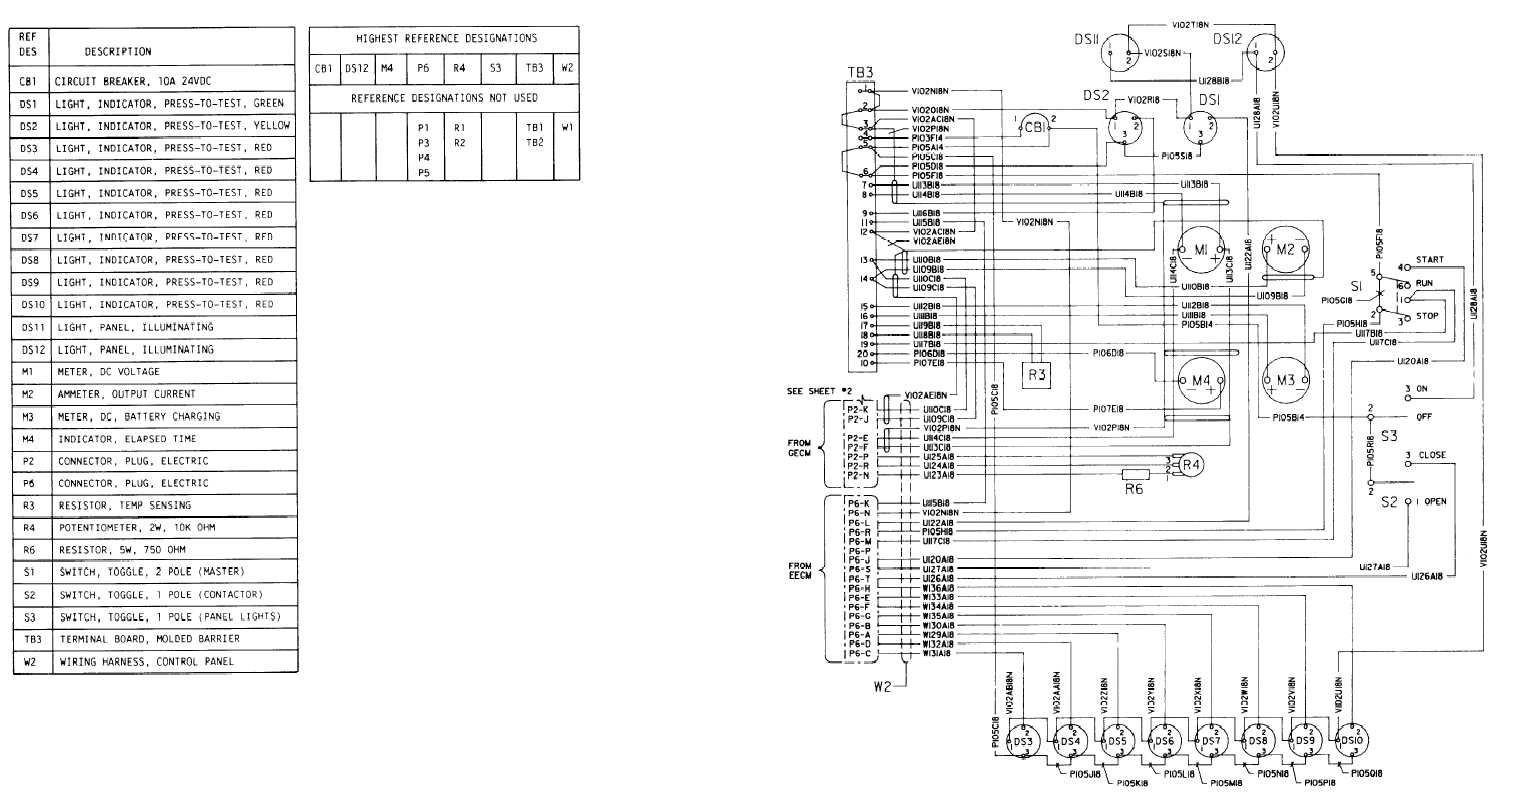 Kubota Wiring Diagram Pdf. Kubota. Wiring Diagram Images